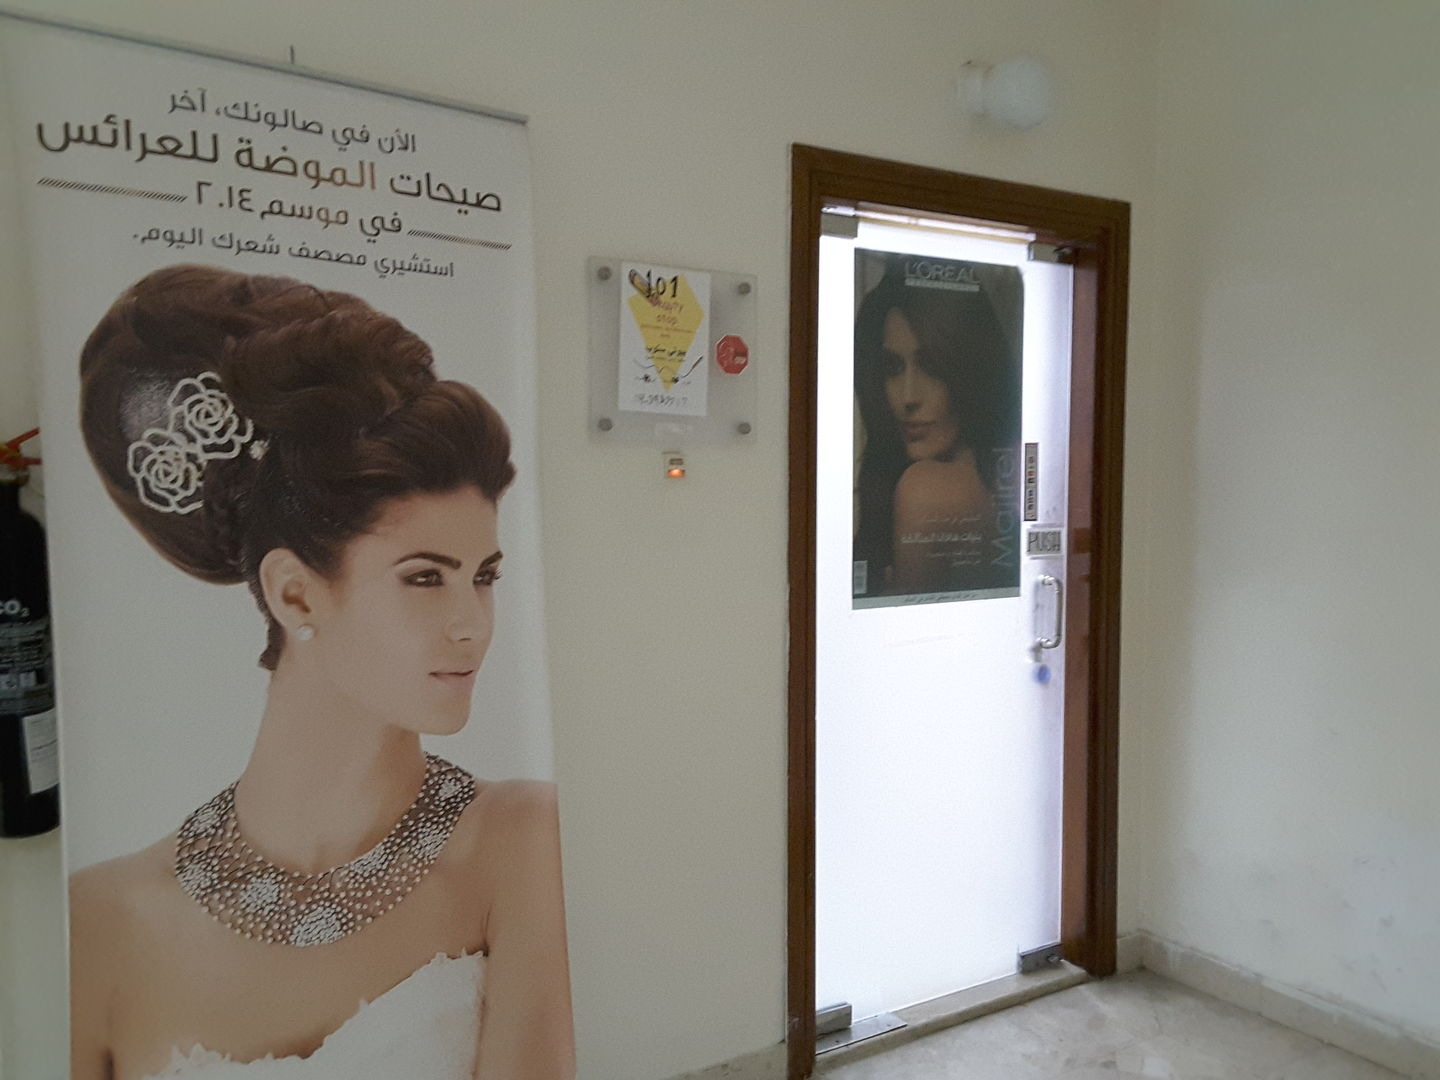 HiDubai-business-beauty-stop-ladies-salon-spa-beauty-wellness-health-beauty-salons-al-hudaiba-dubai-2